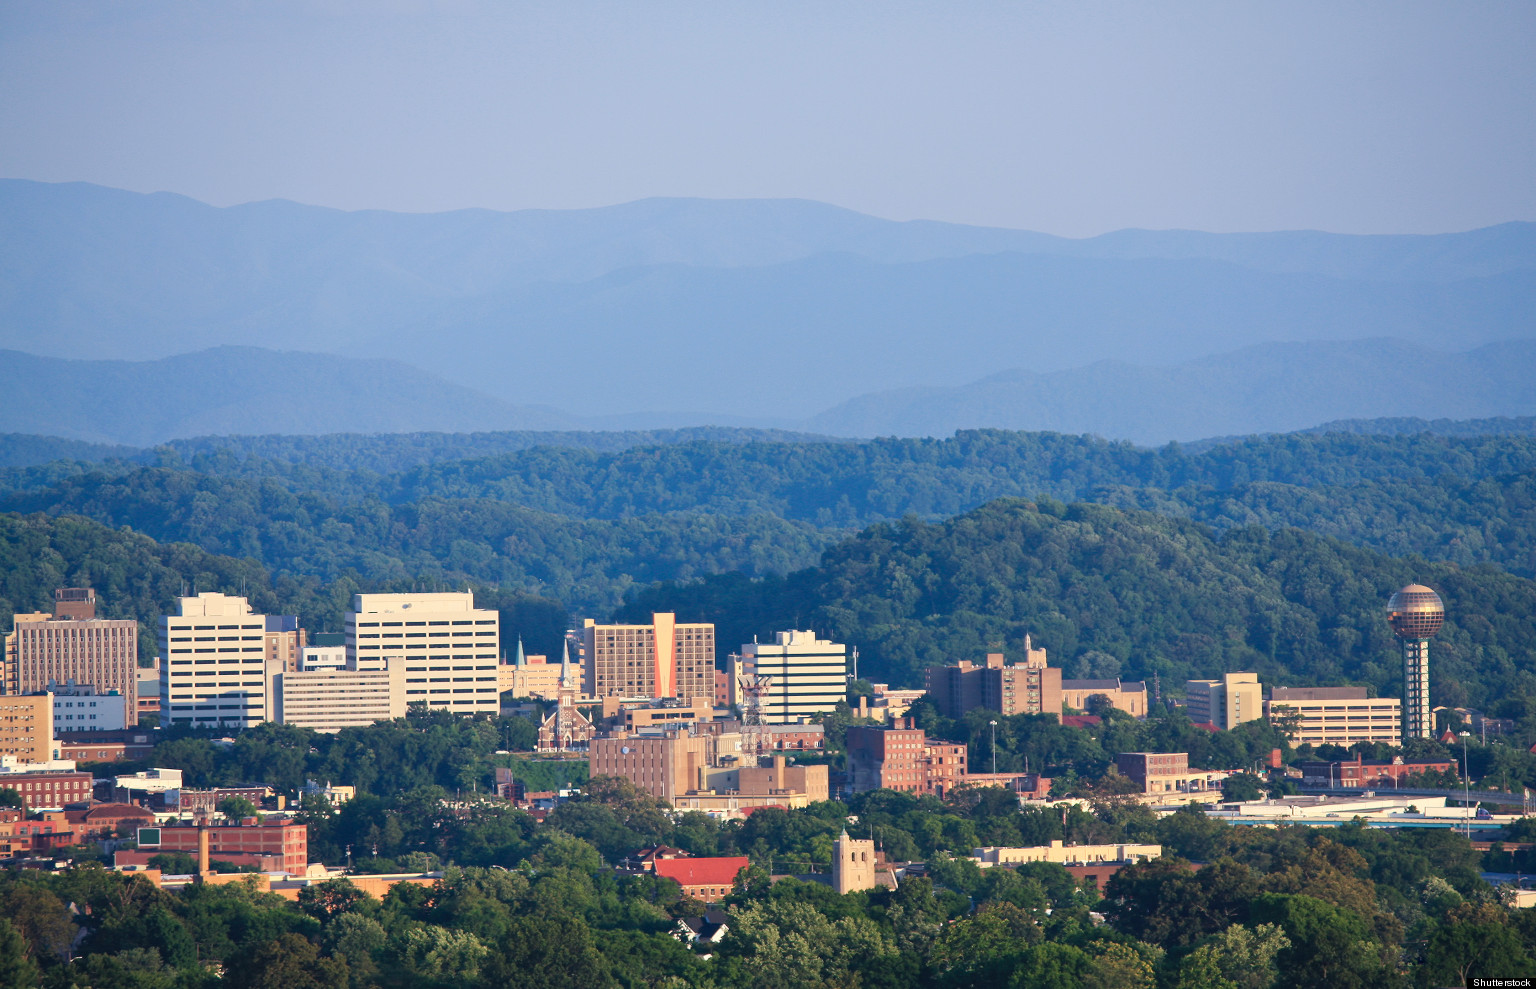 Knoxville tn is america 39 s most romantic city according to for Small towns in tennessee near knoxville